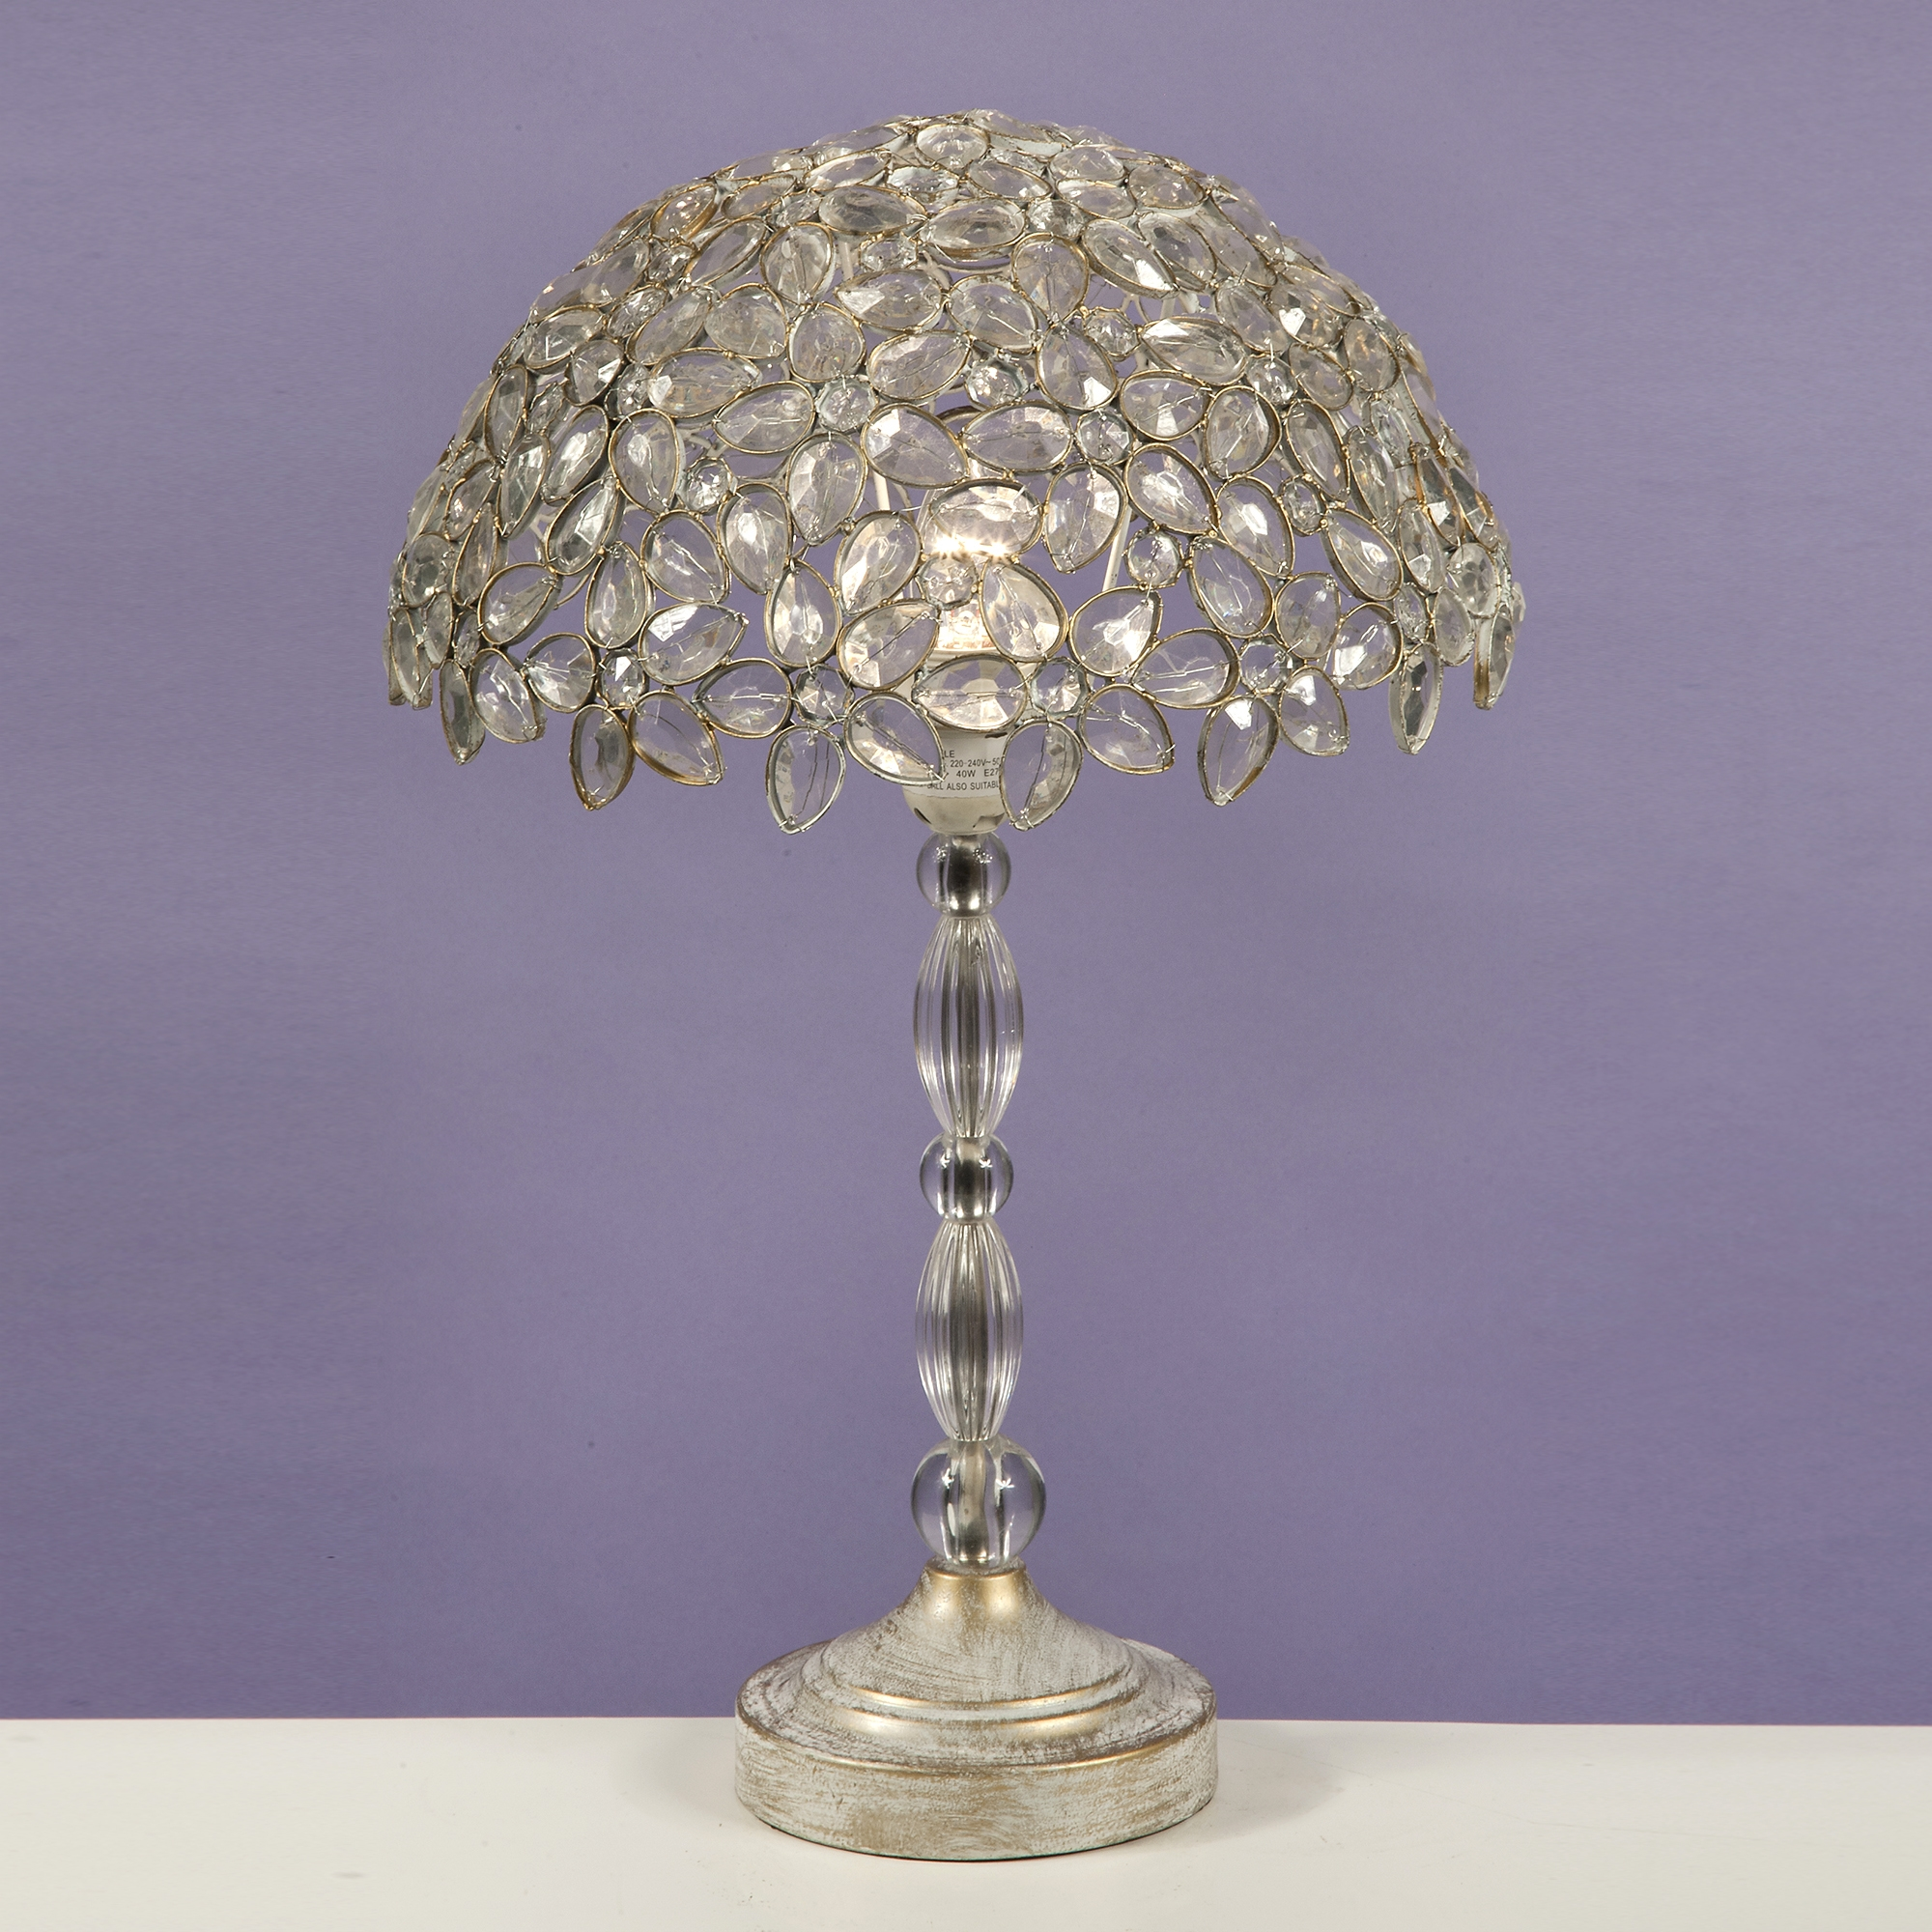 Jewelled Table Lamp - Antique White